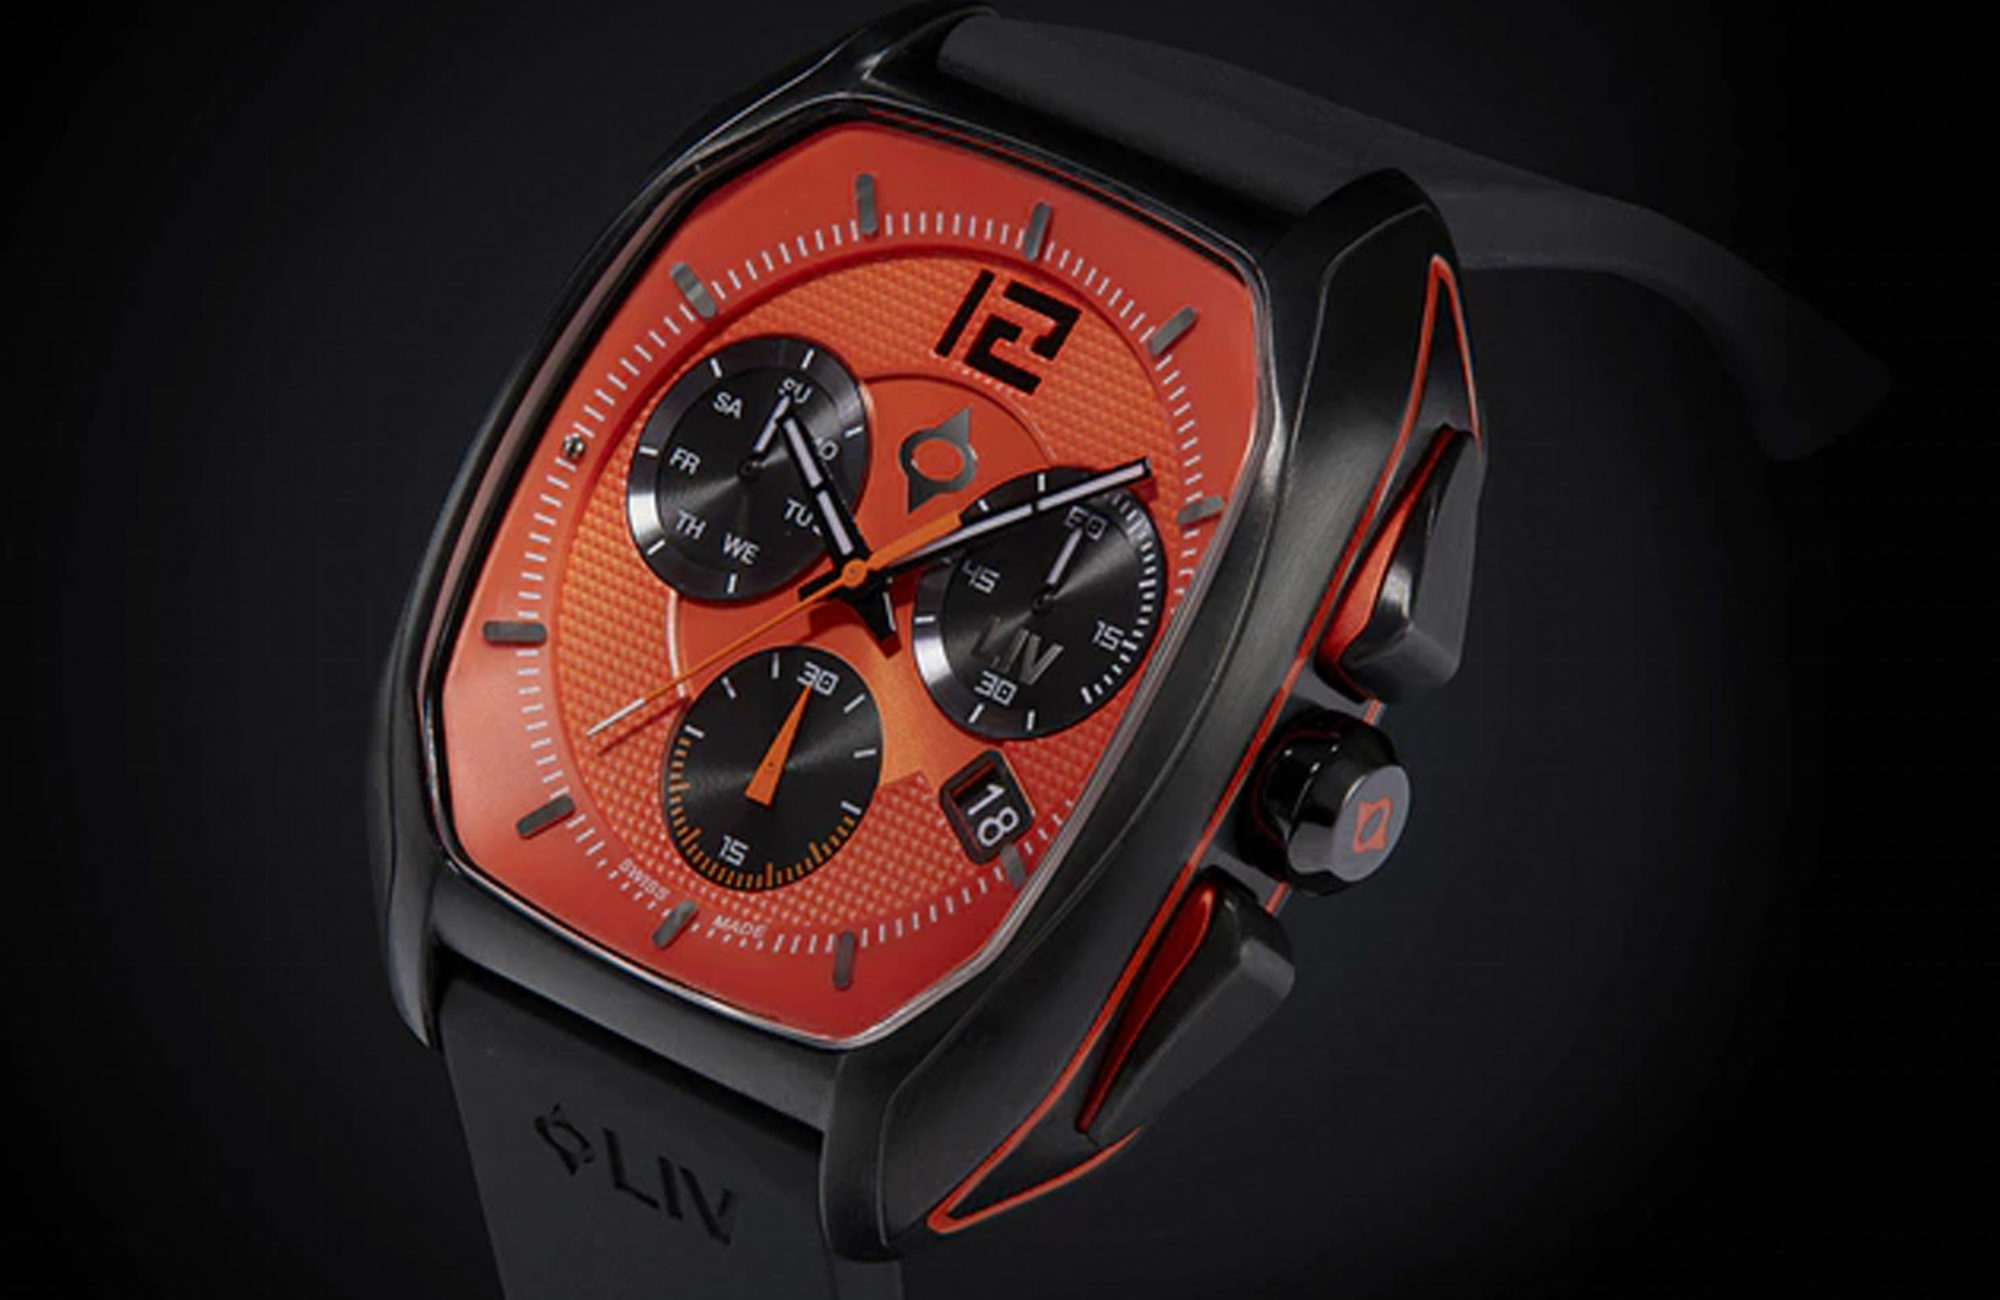 LIV REBEL SWISS WATCH HIGH QUALITY SELF WINDING WITH SAPPHIRE FACE